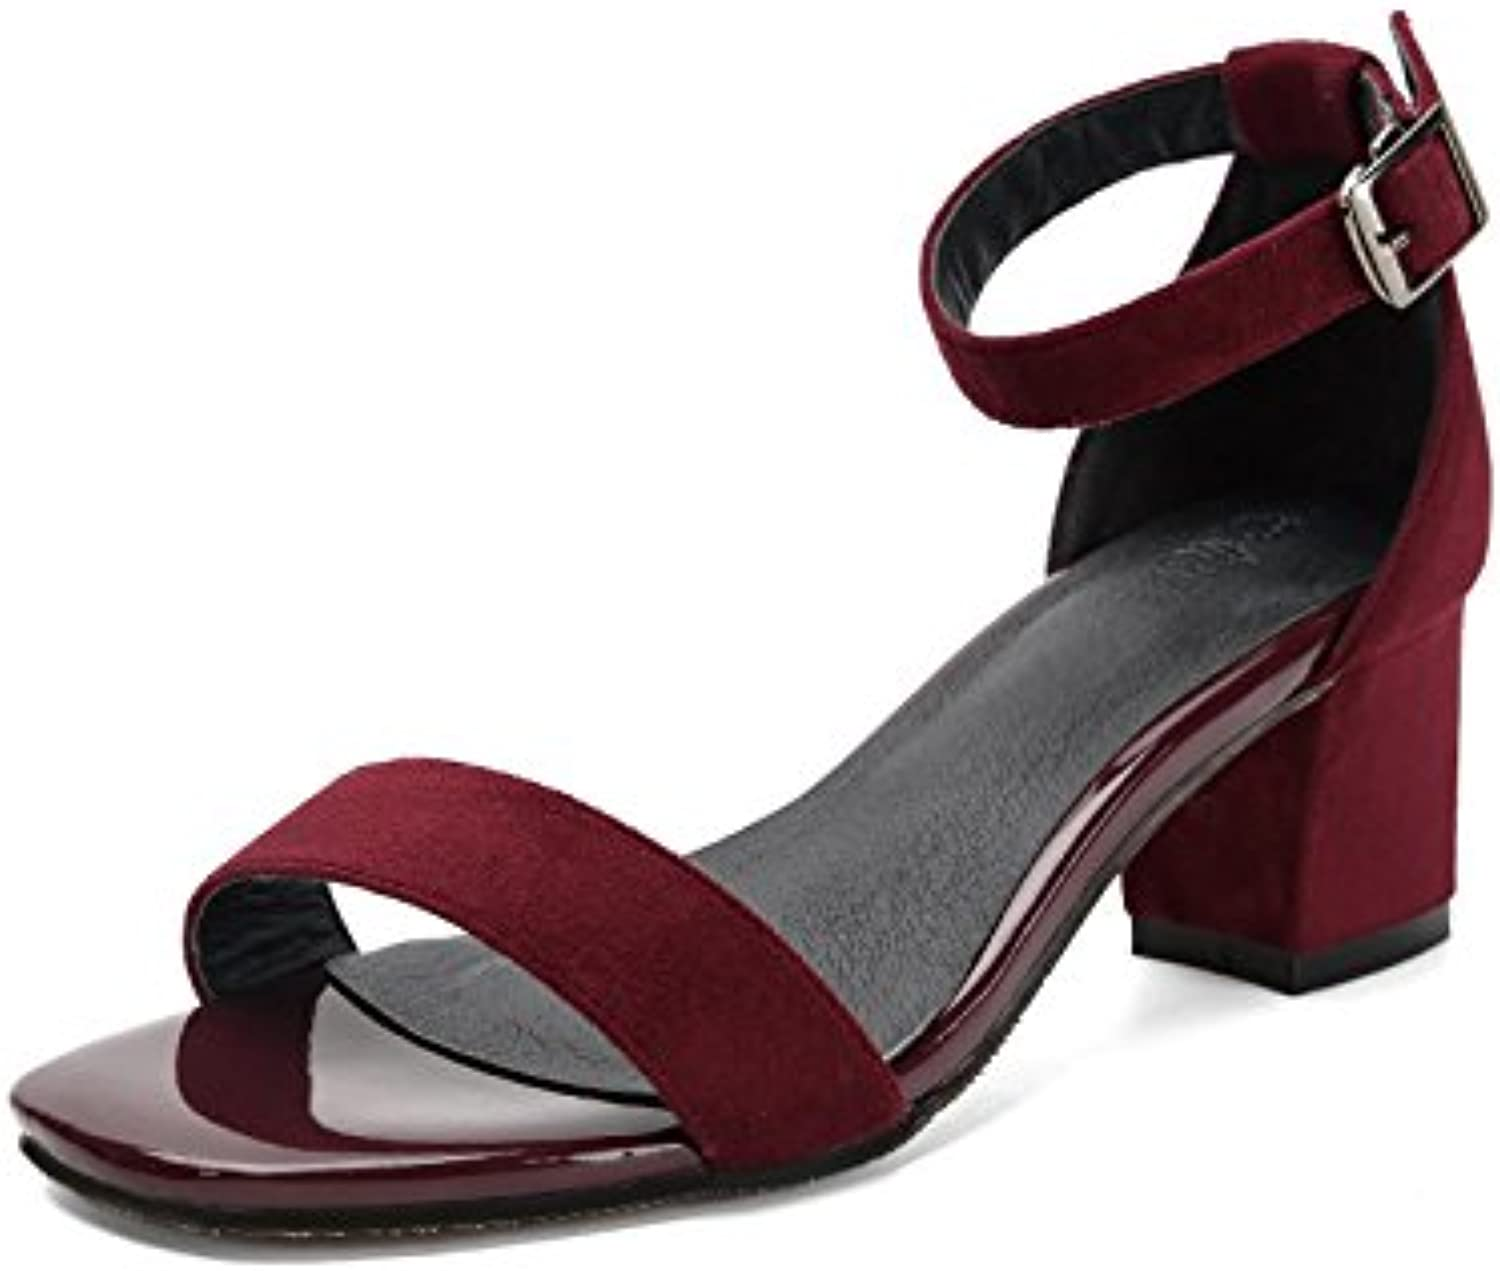 WHW Women shoes a field-open toe high-heel shoes ,red,34 rough with students